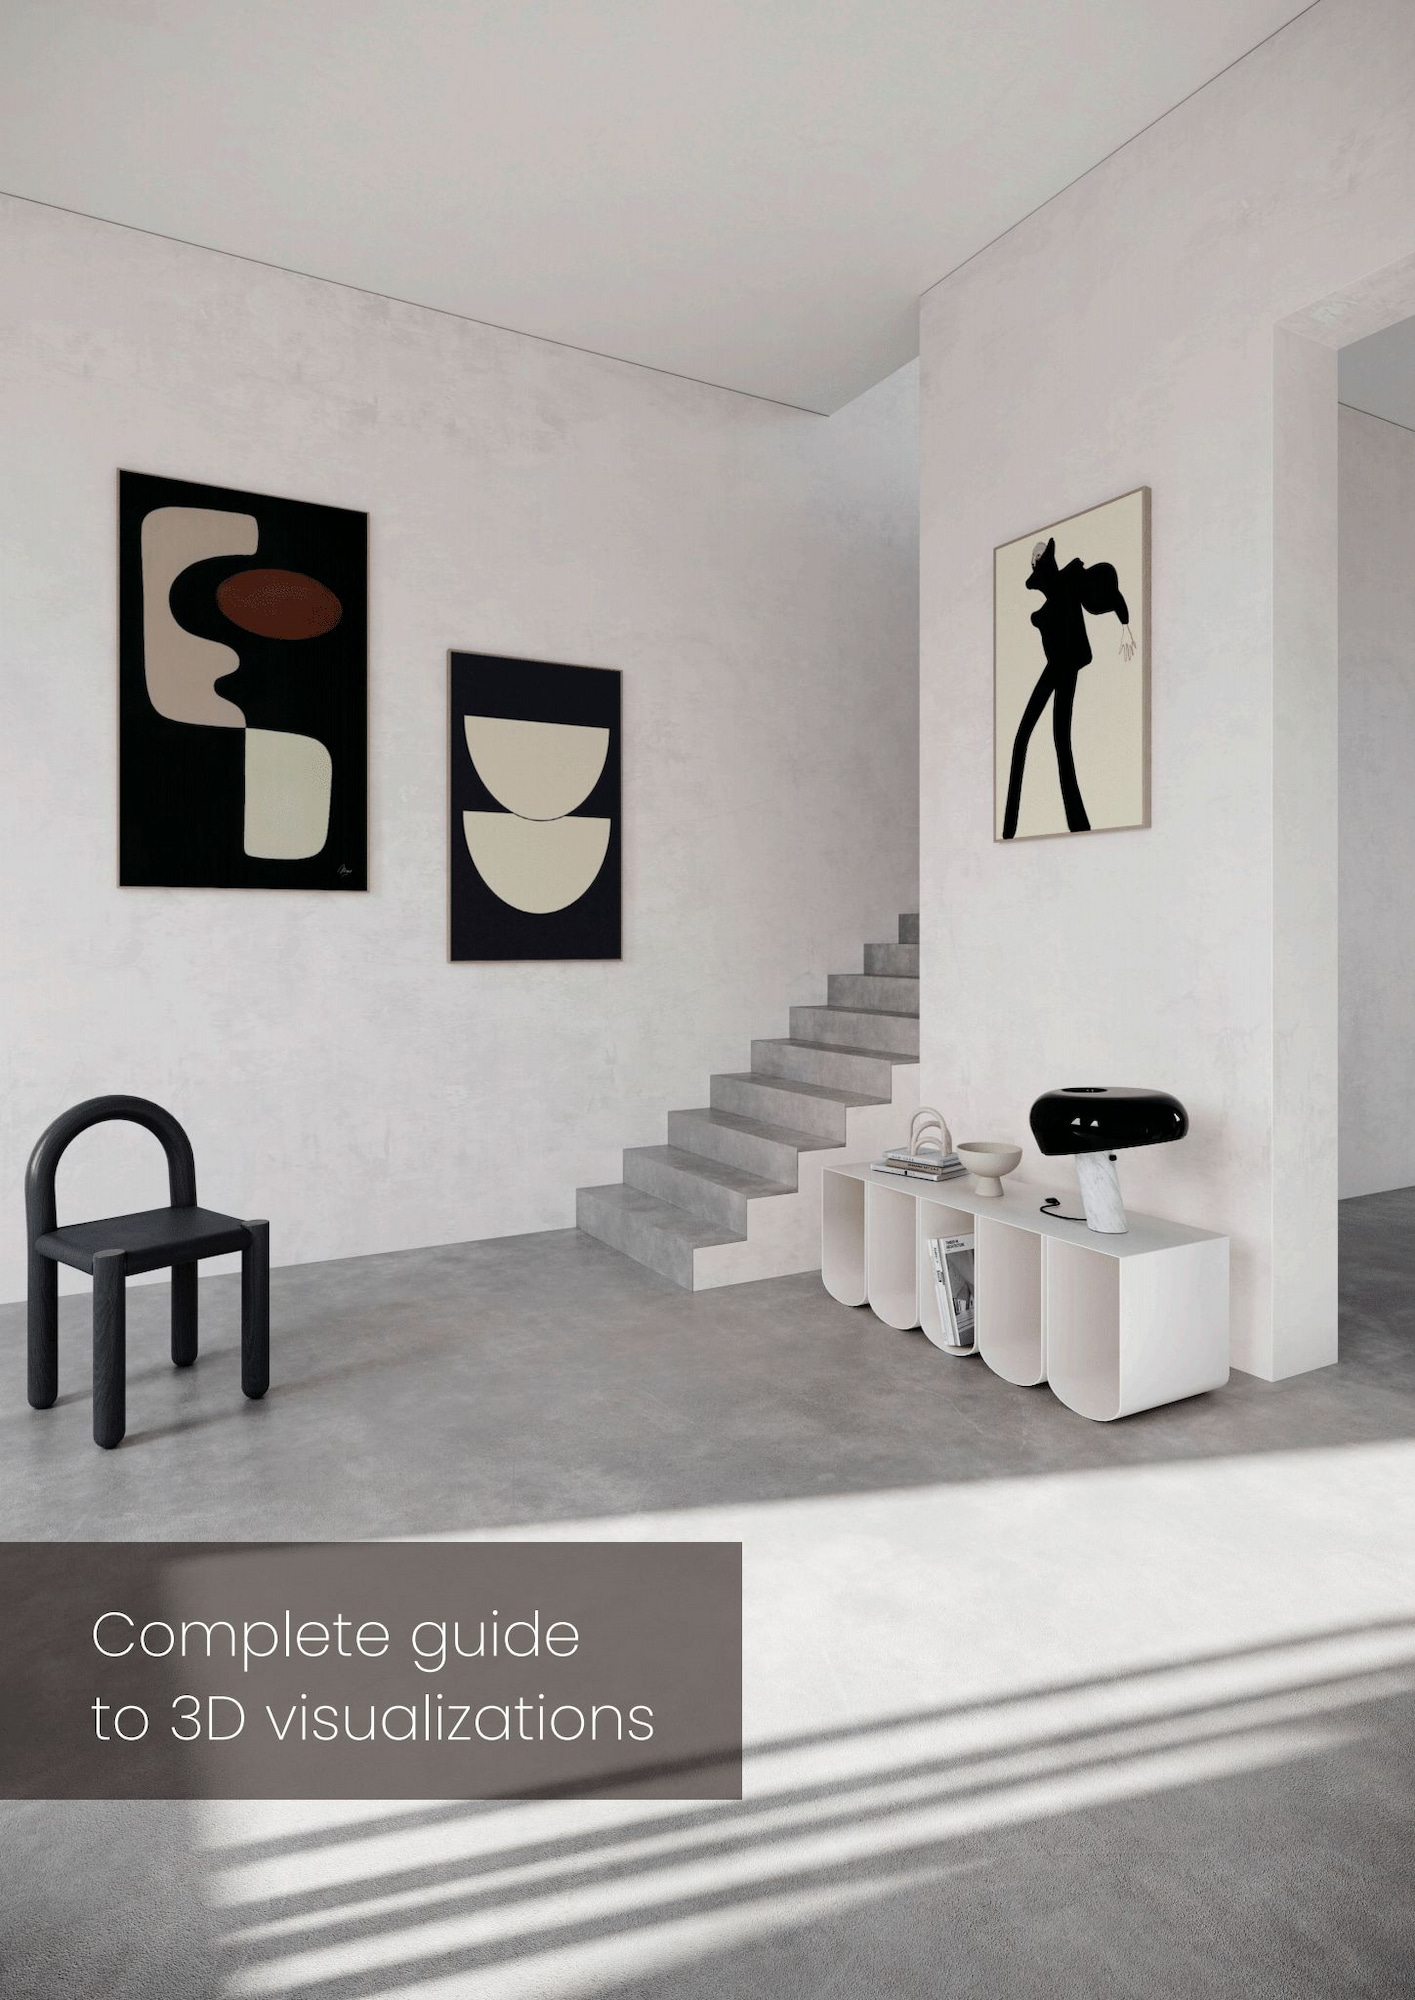 Complete guide to 3D visualizations cover